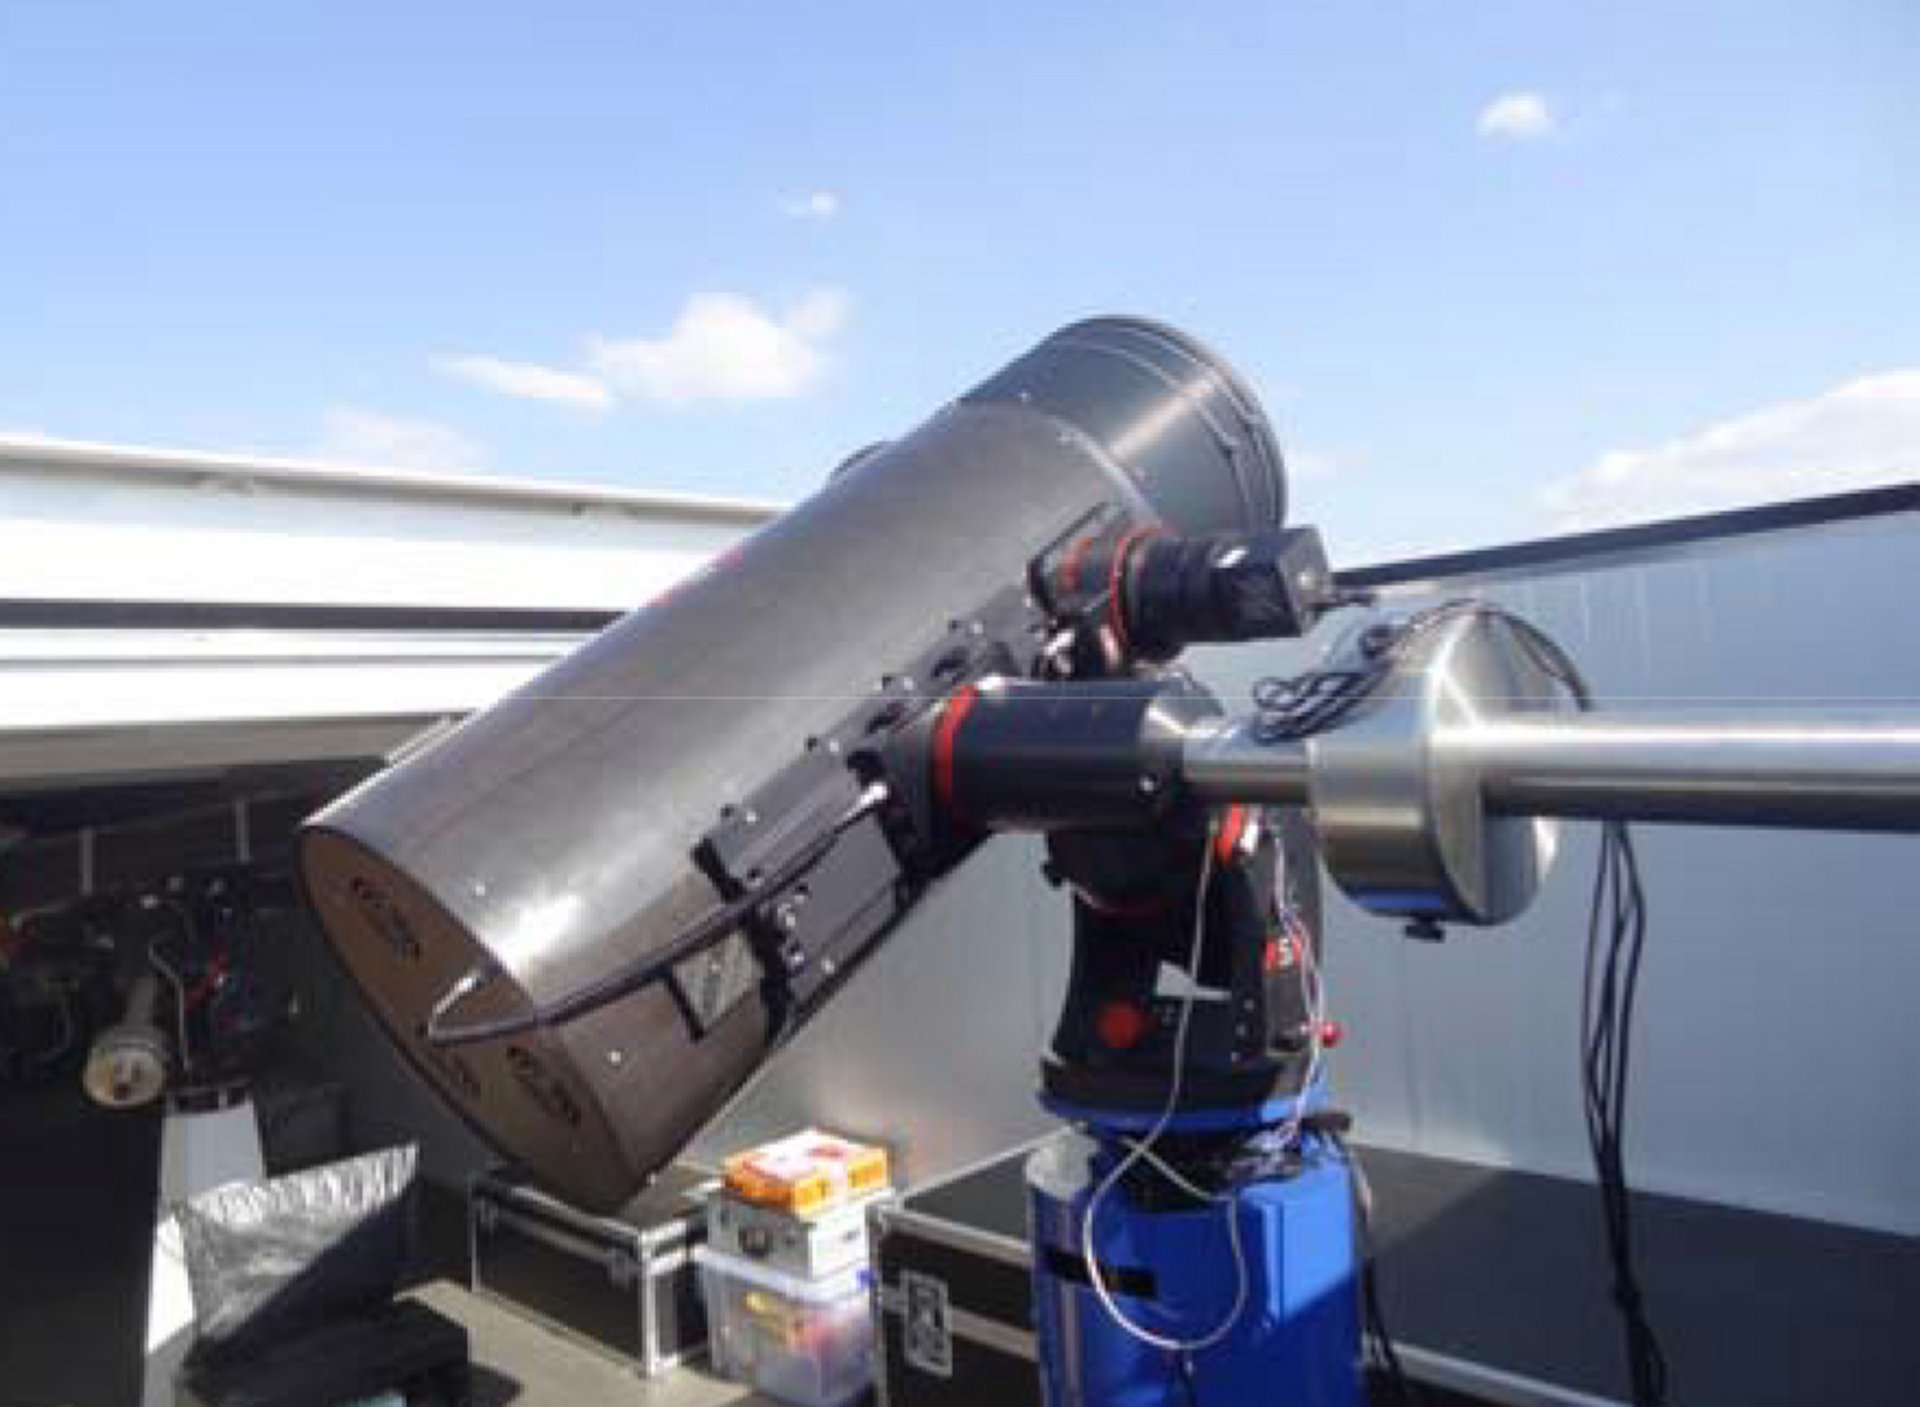 Airbus Robotic Telescope provides automated tracking and surveillance of satellites and debris in space.